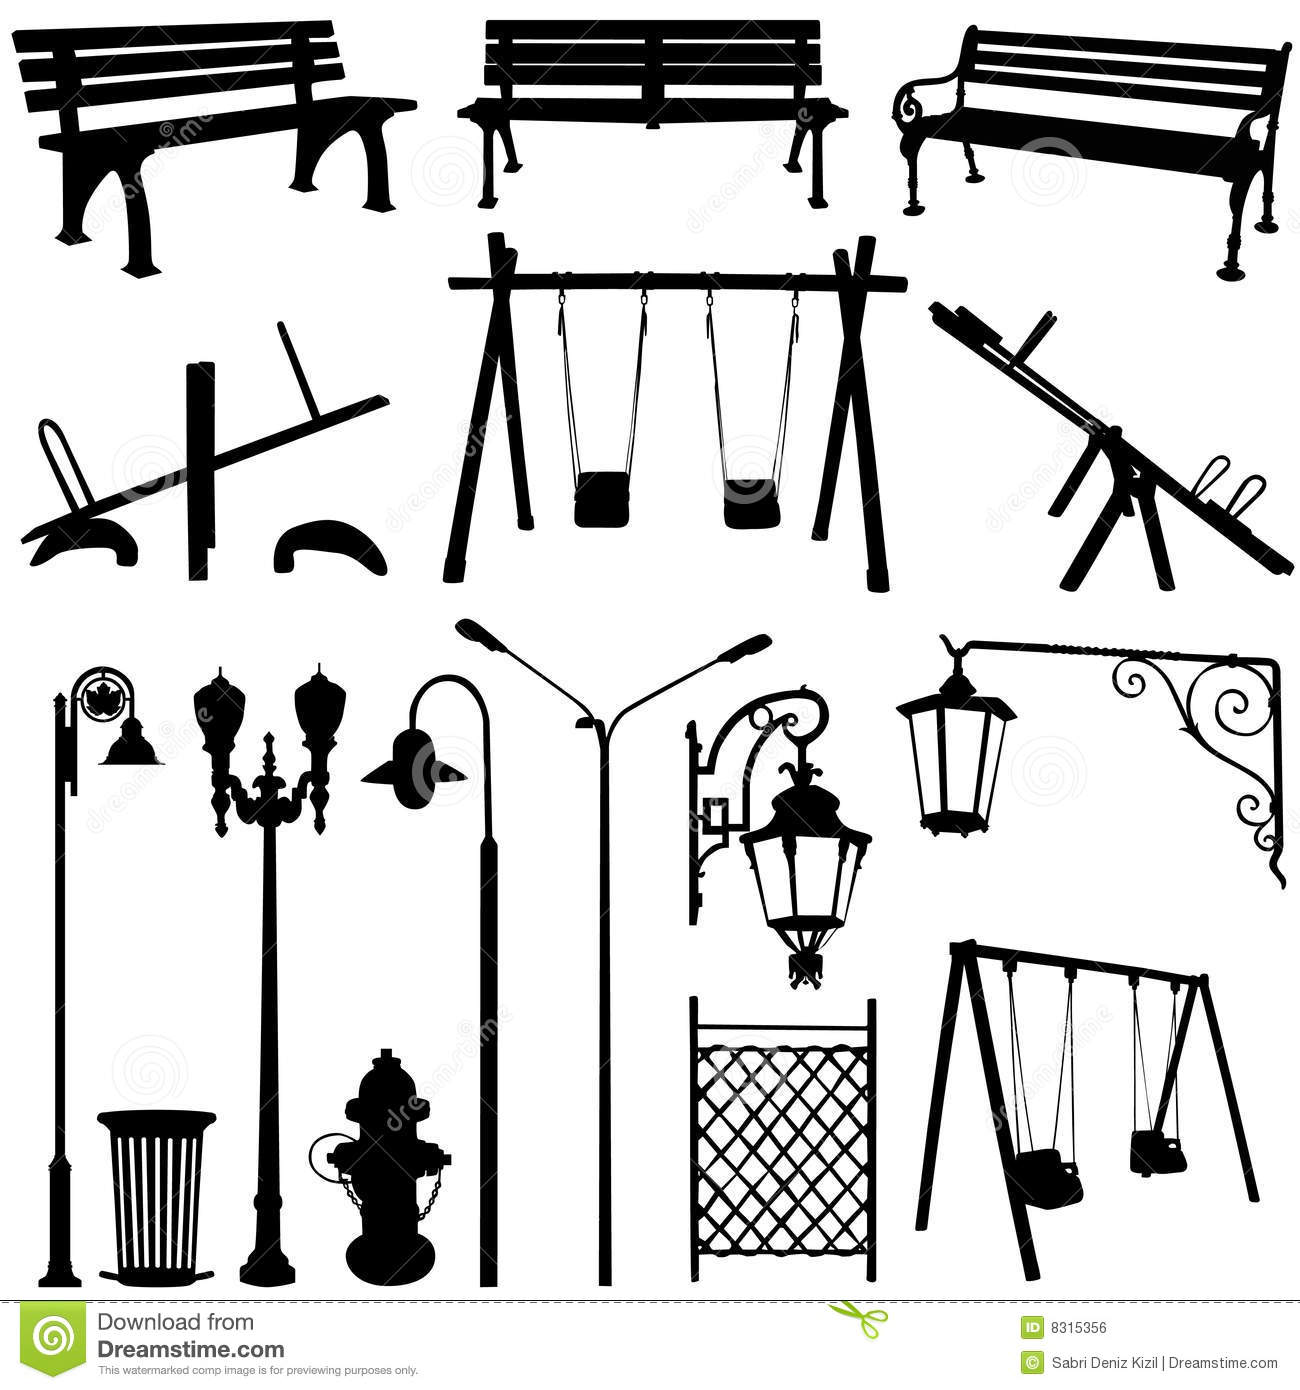 Park Outdoor Object Royalty Free Stock Image